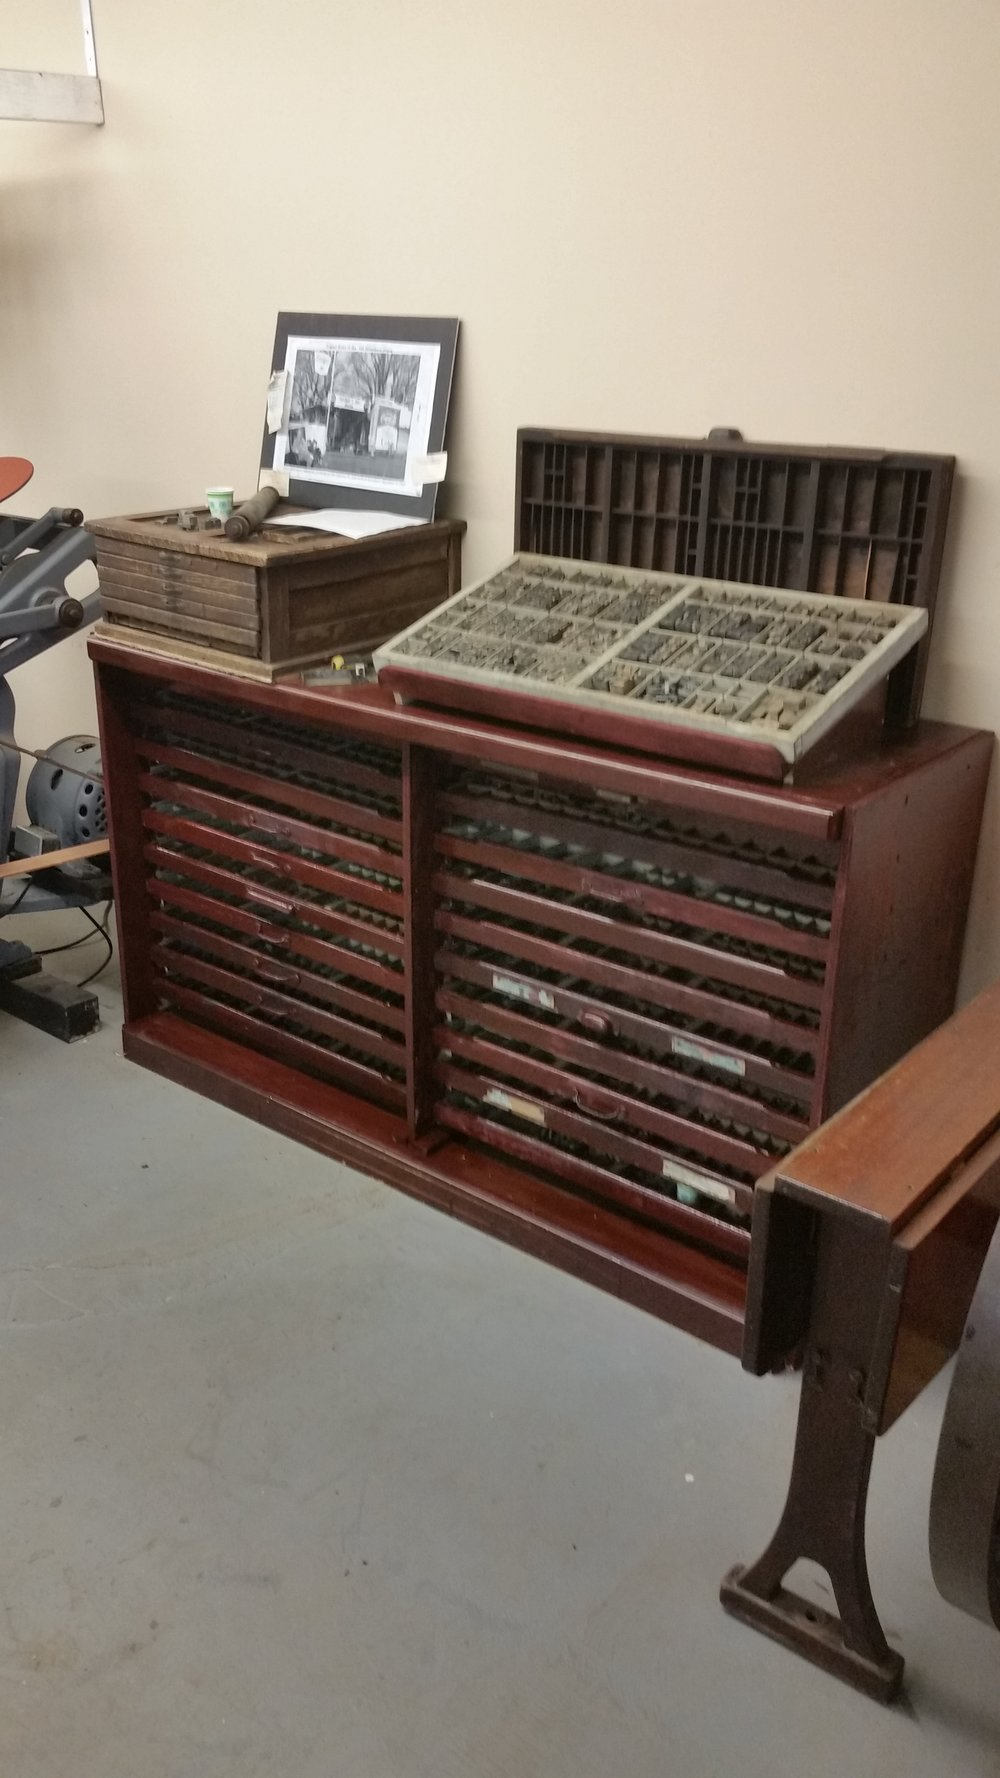 A new type cabinet was built